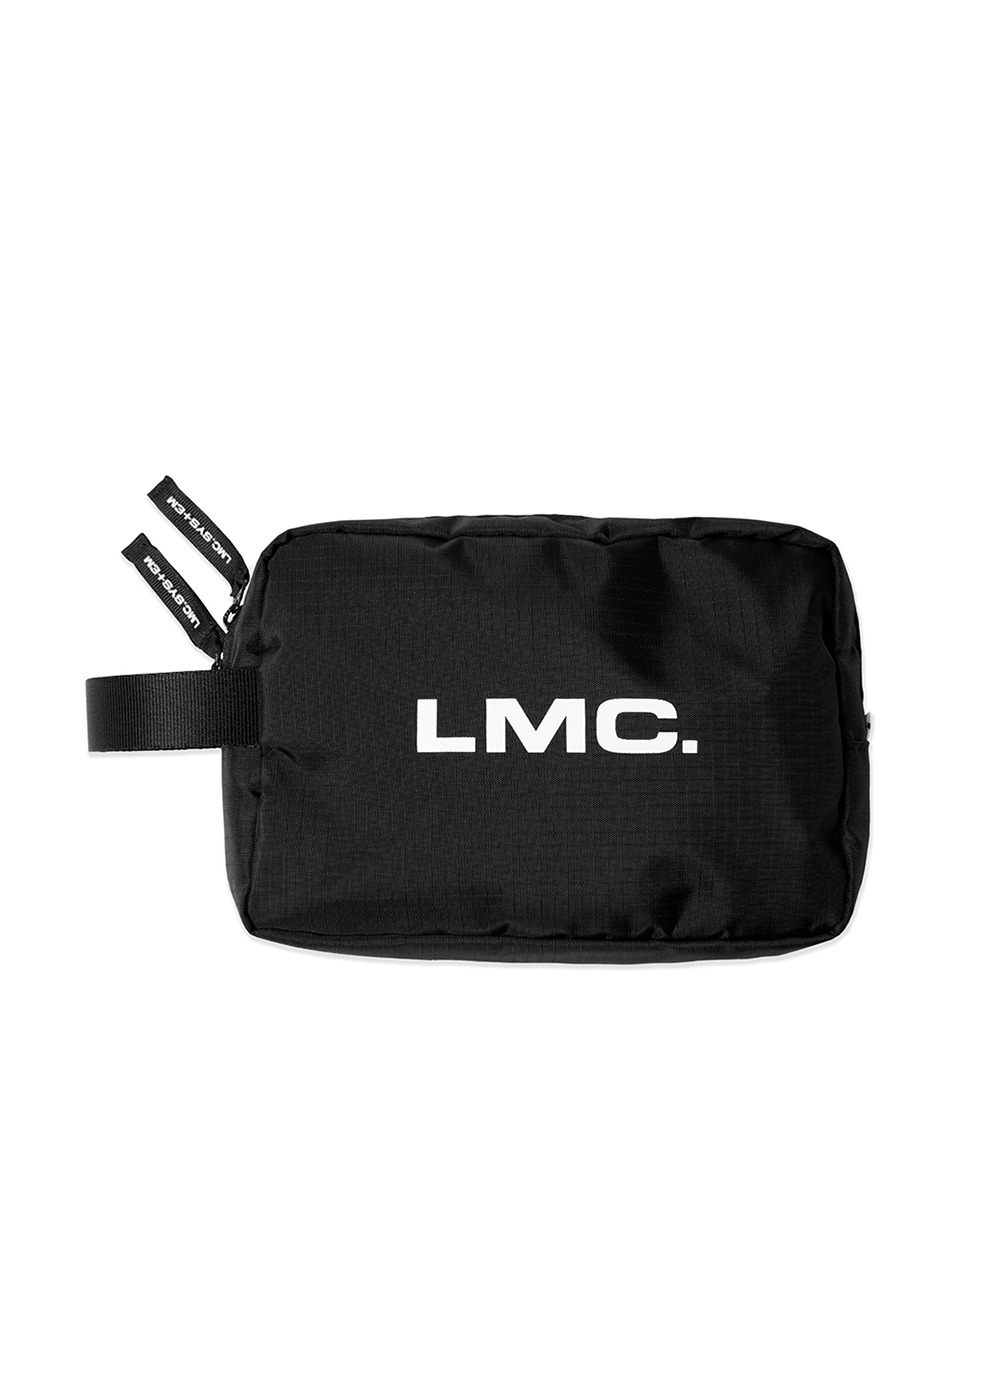 LMC SYSTEM BOX MULTI POUCH black